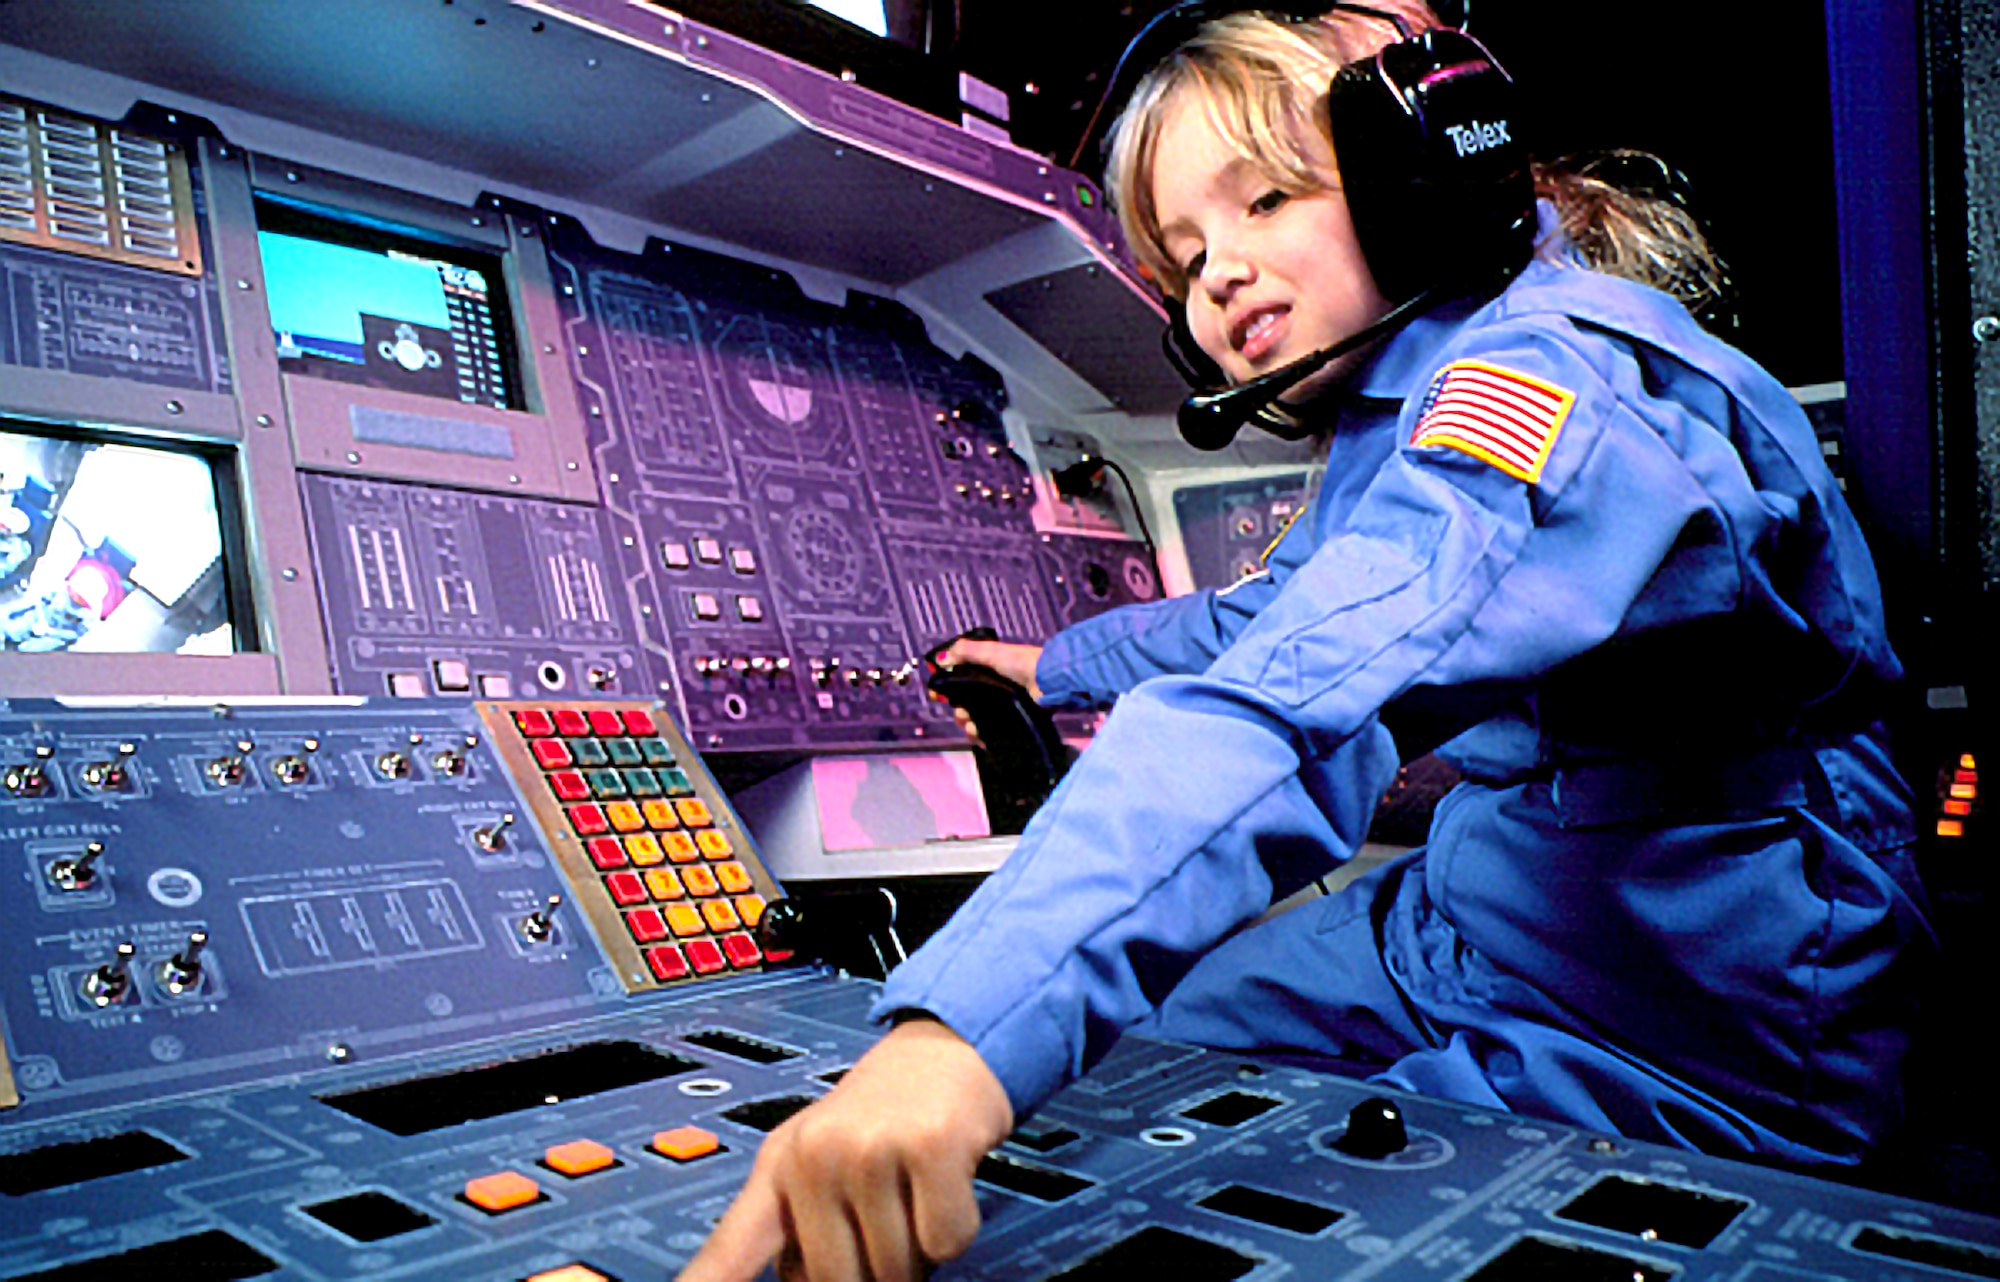 Air Force Services Child and Youth Programs is offering a variety of summer youth camps in 2019, to include Air Force Space Camp. (U.S. Air Force/file photo)